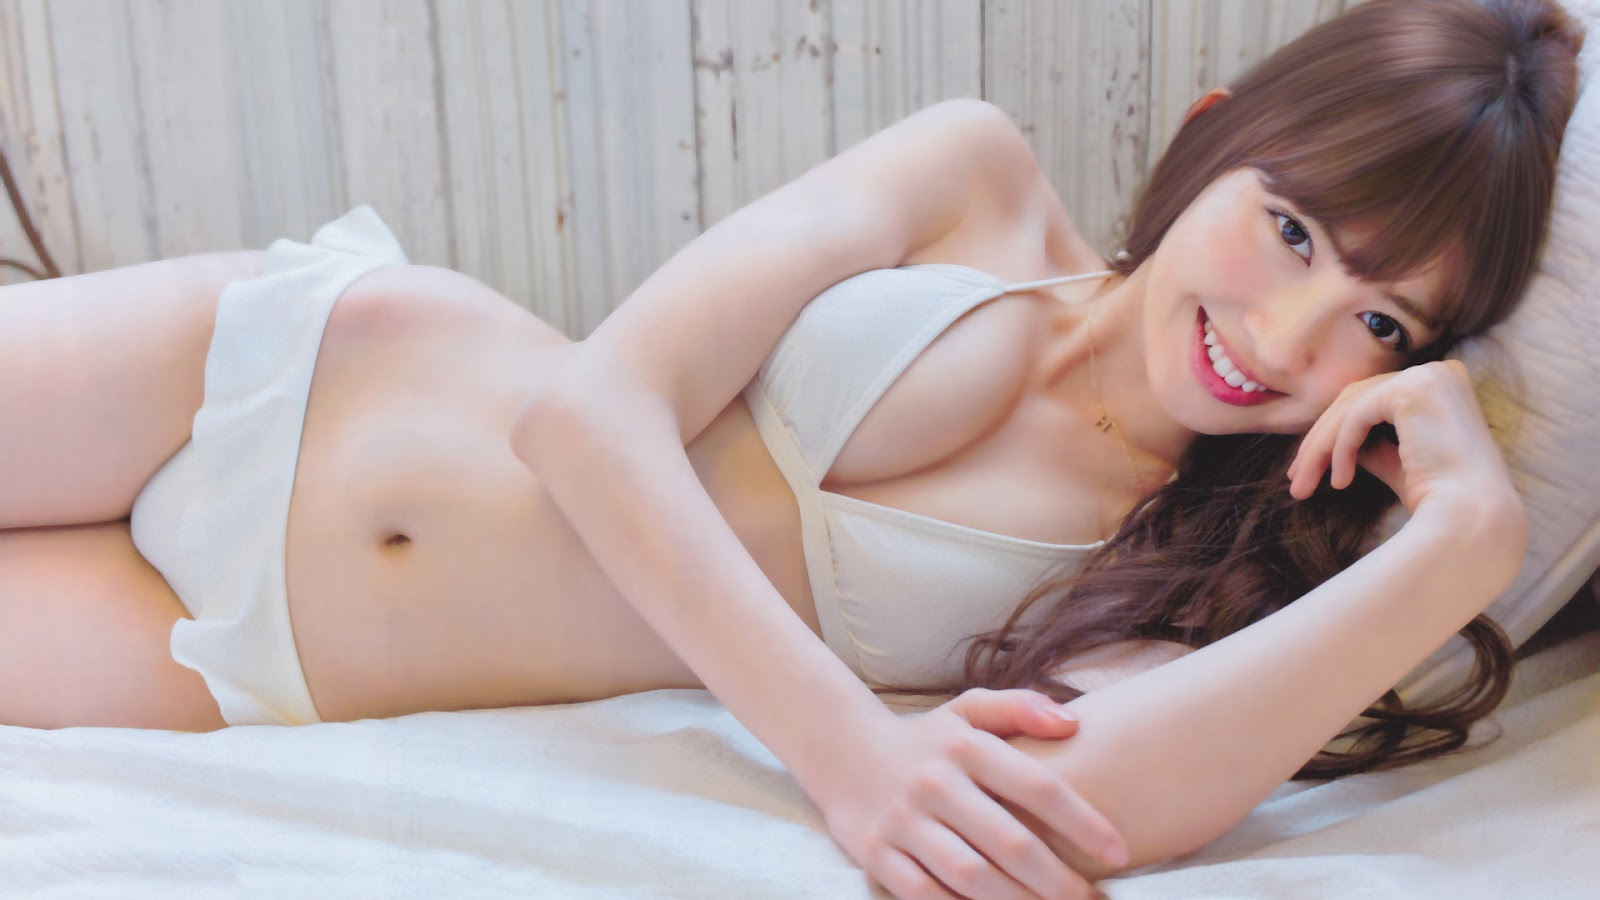 Why do japanese chicks have such big tits? - Random ...